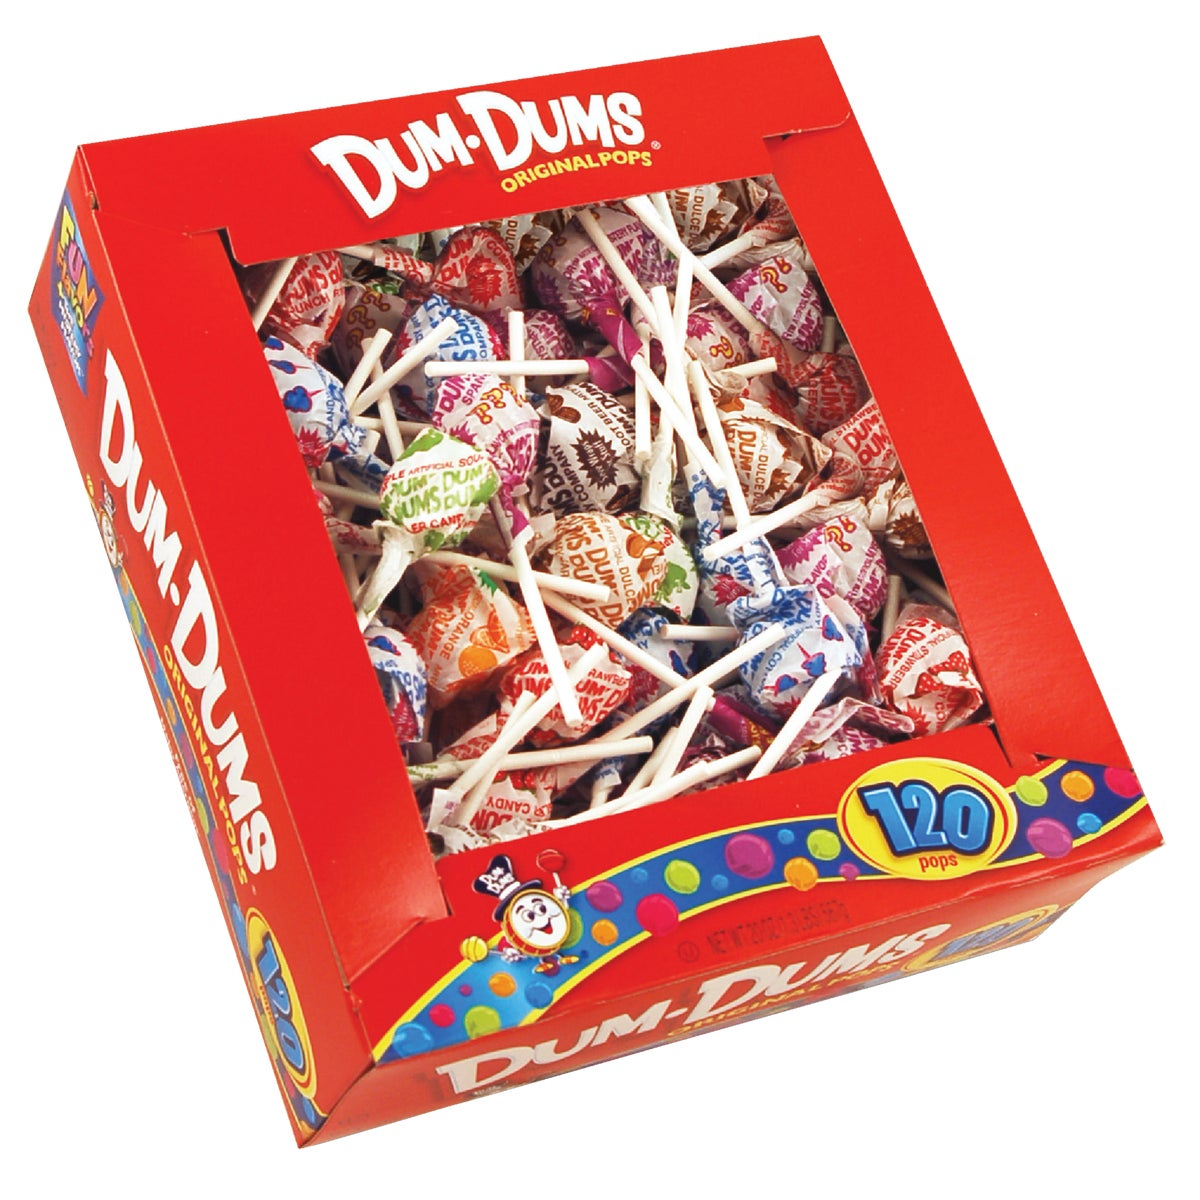 120CT DUM DUM POPS - 066 by Spangler Candy Co